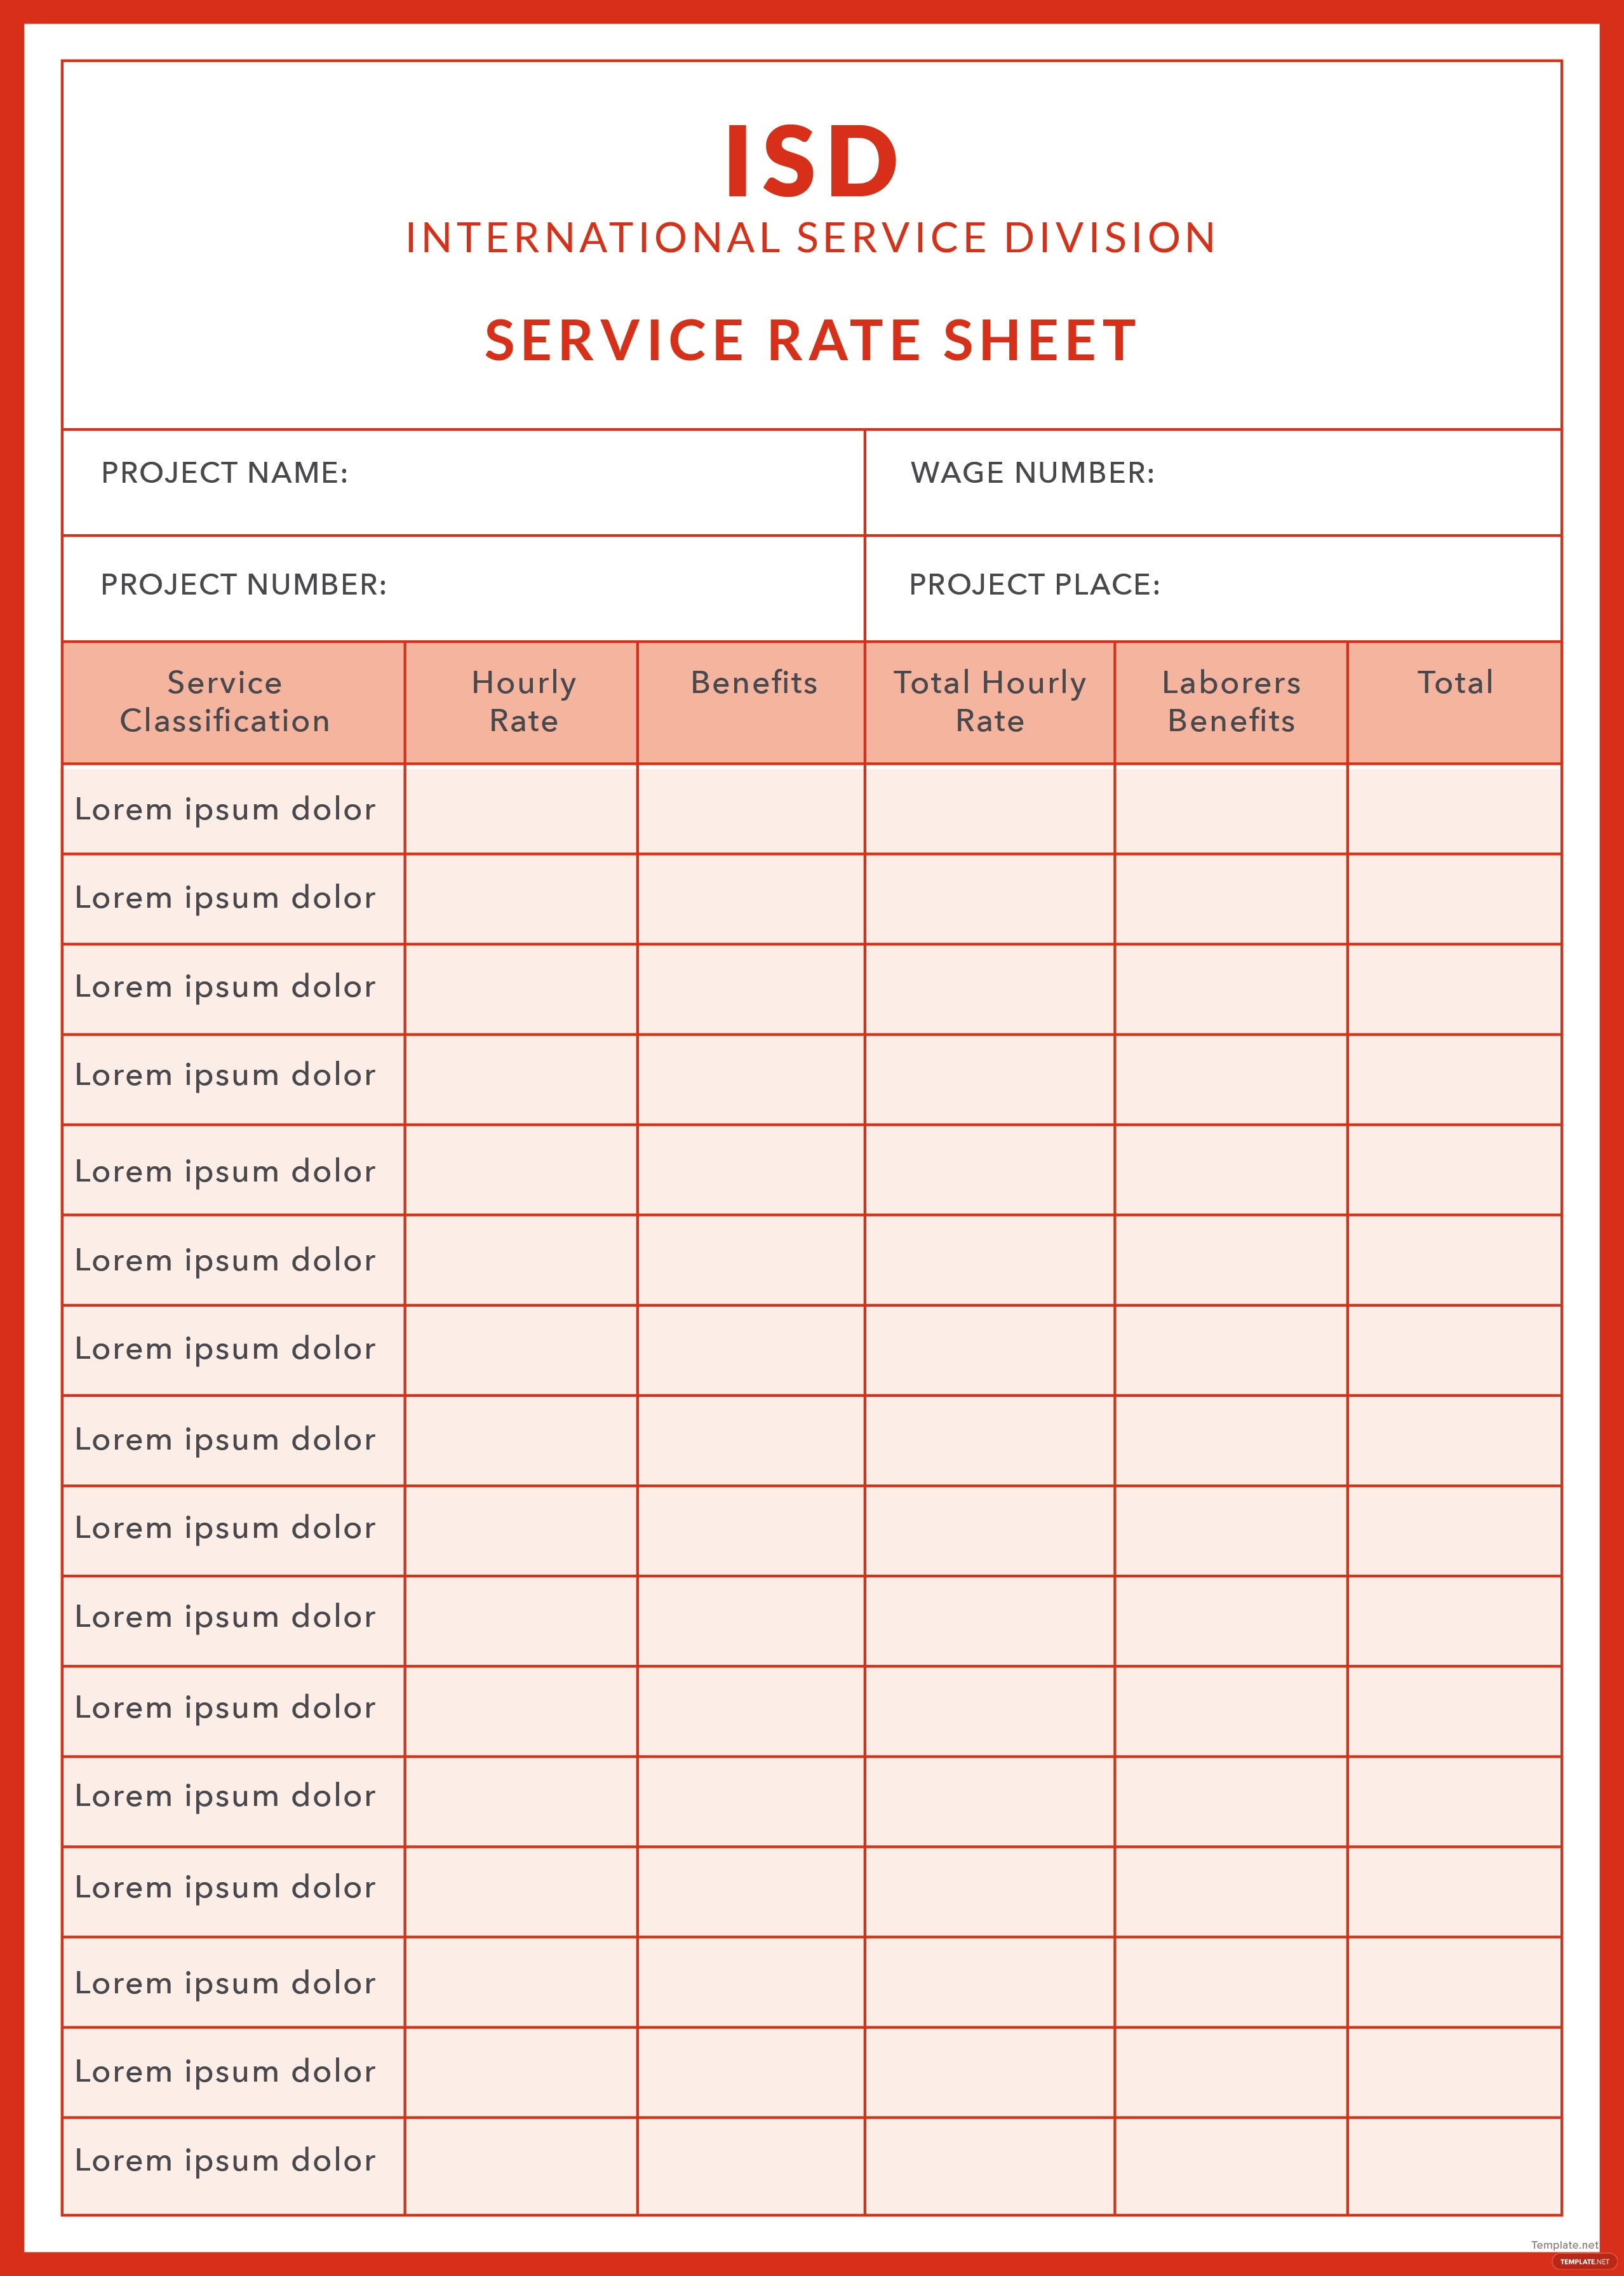 Free Service Rate Sheet Template in Adobe Illustrator, Microsoft ...